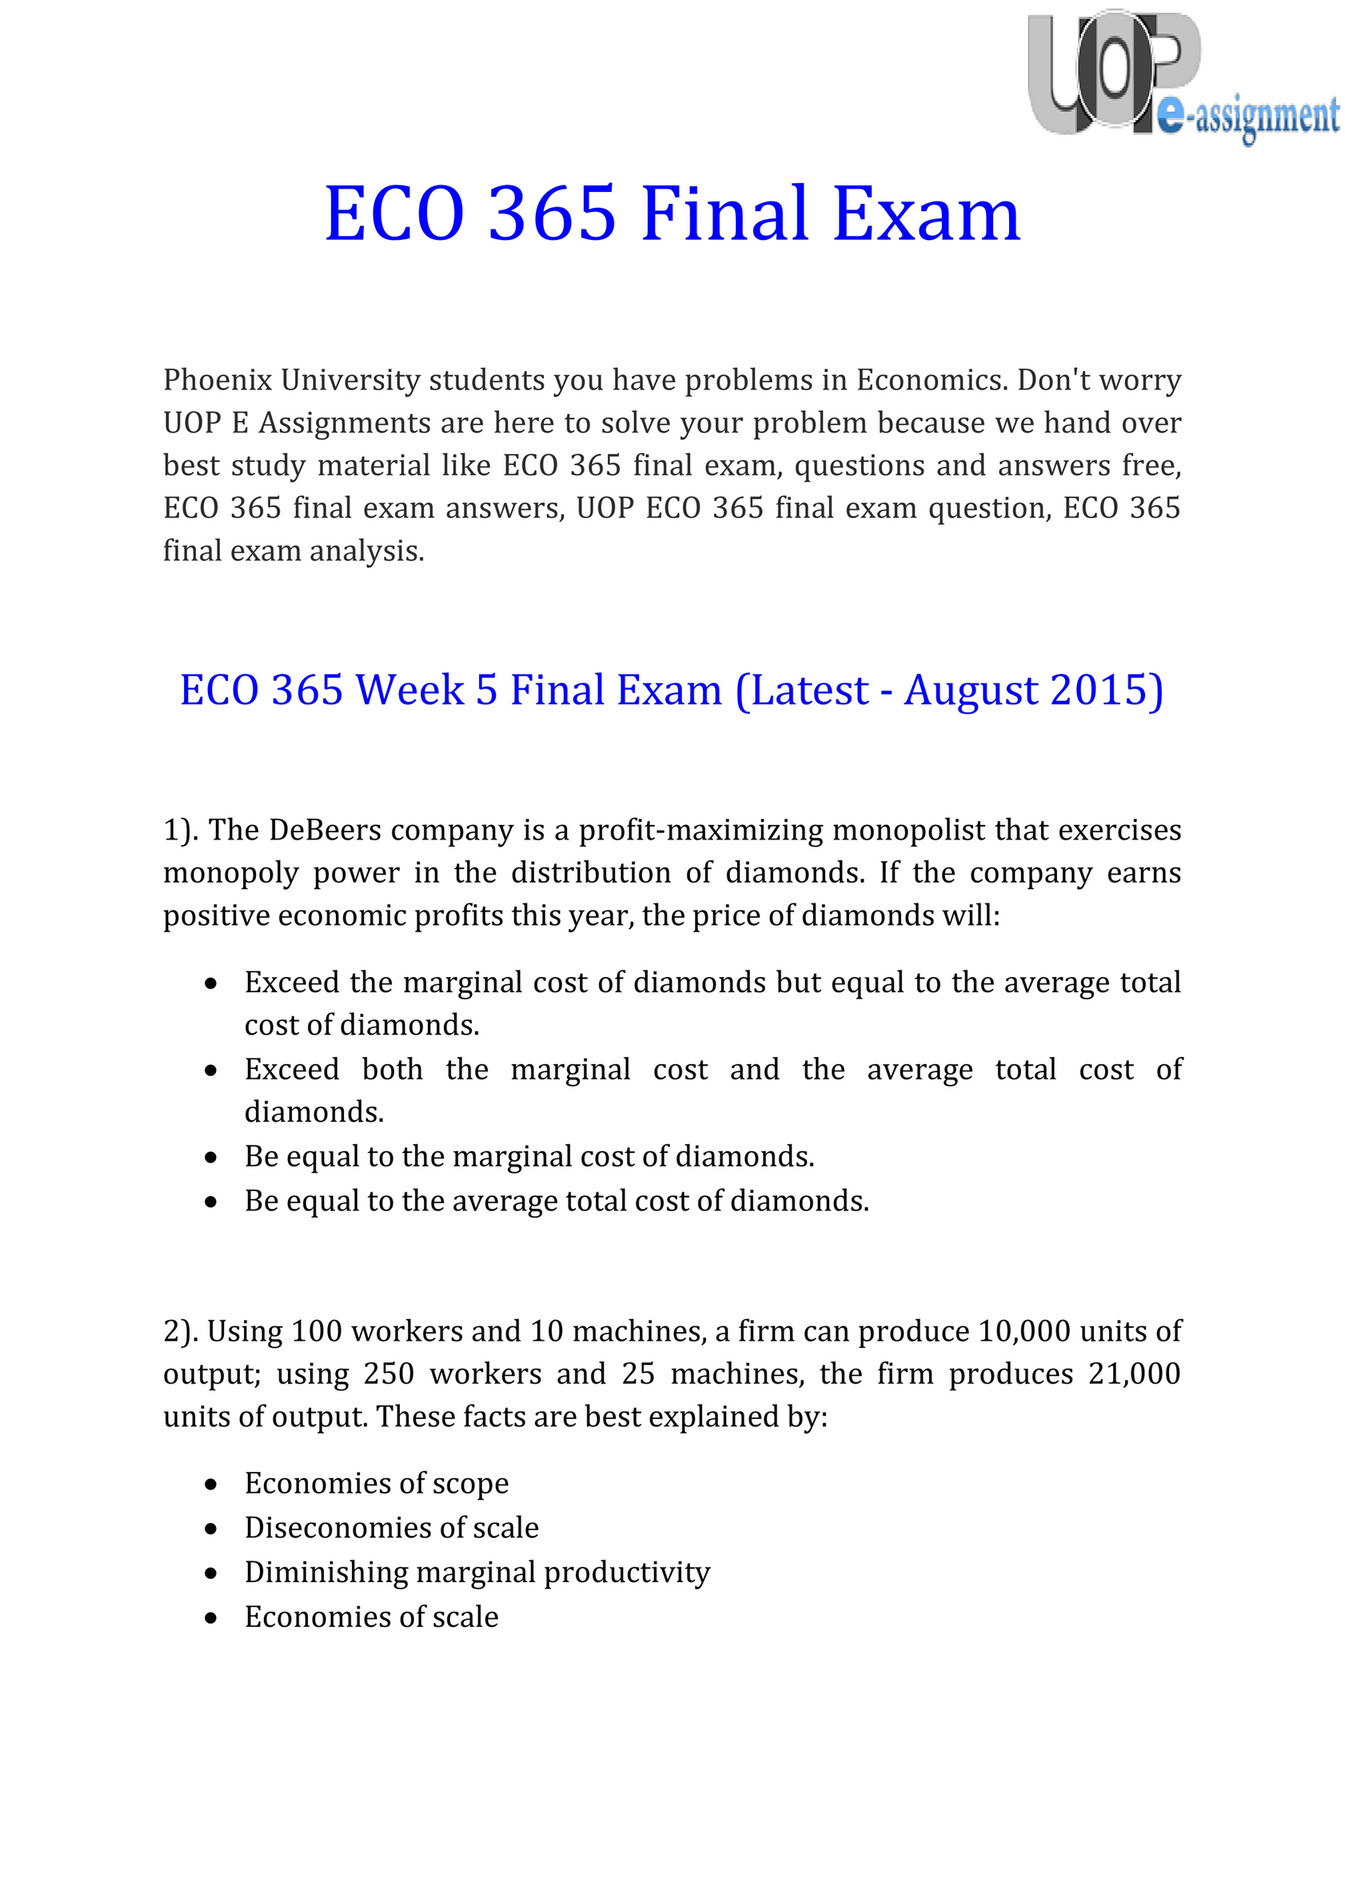 UOP E Assignments - ECO 365 Final Exam : Question & Answers | UOP E